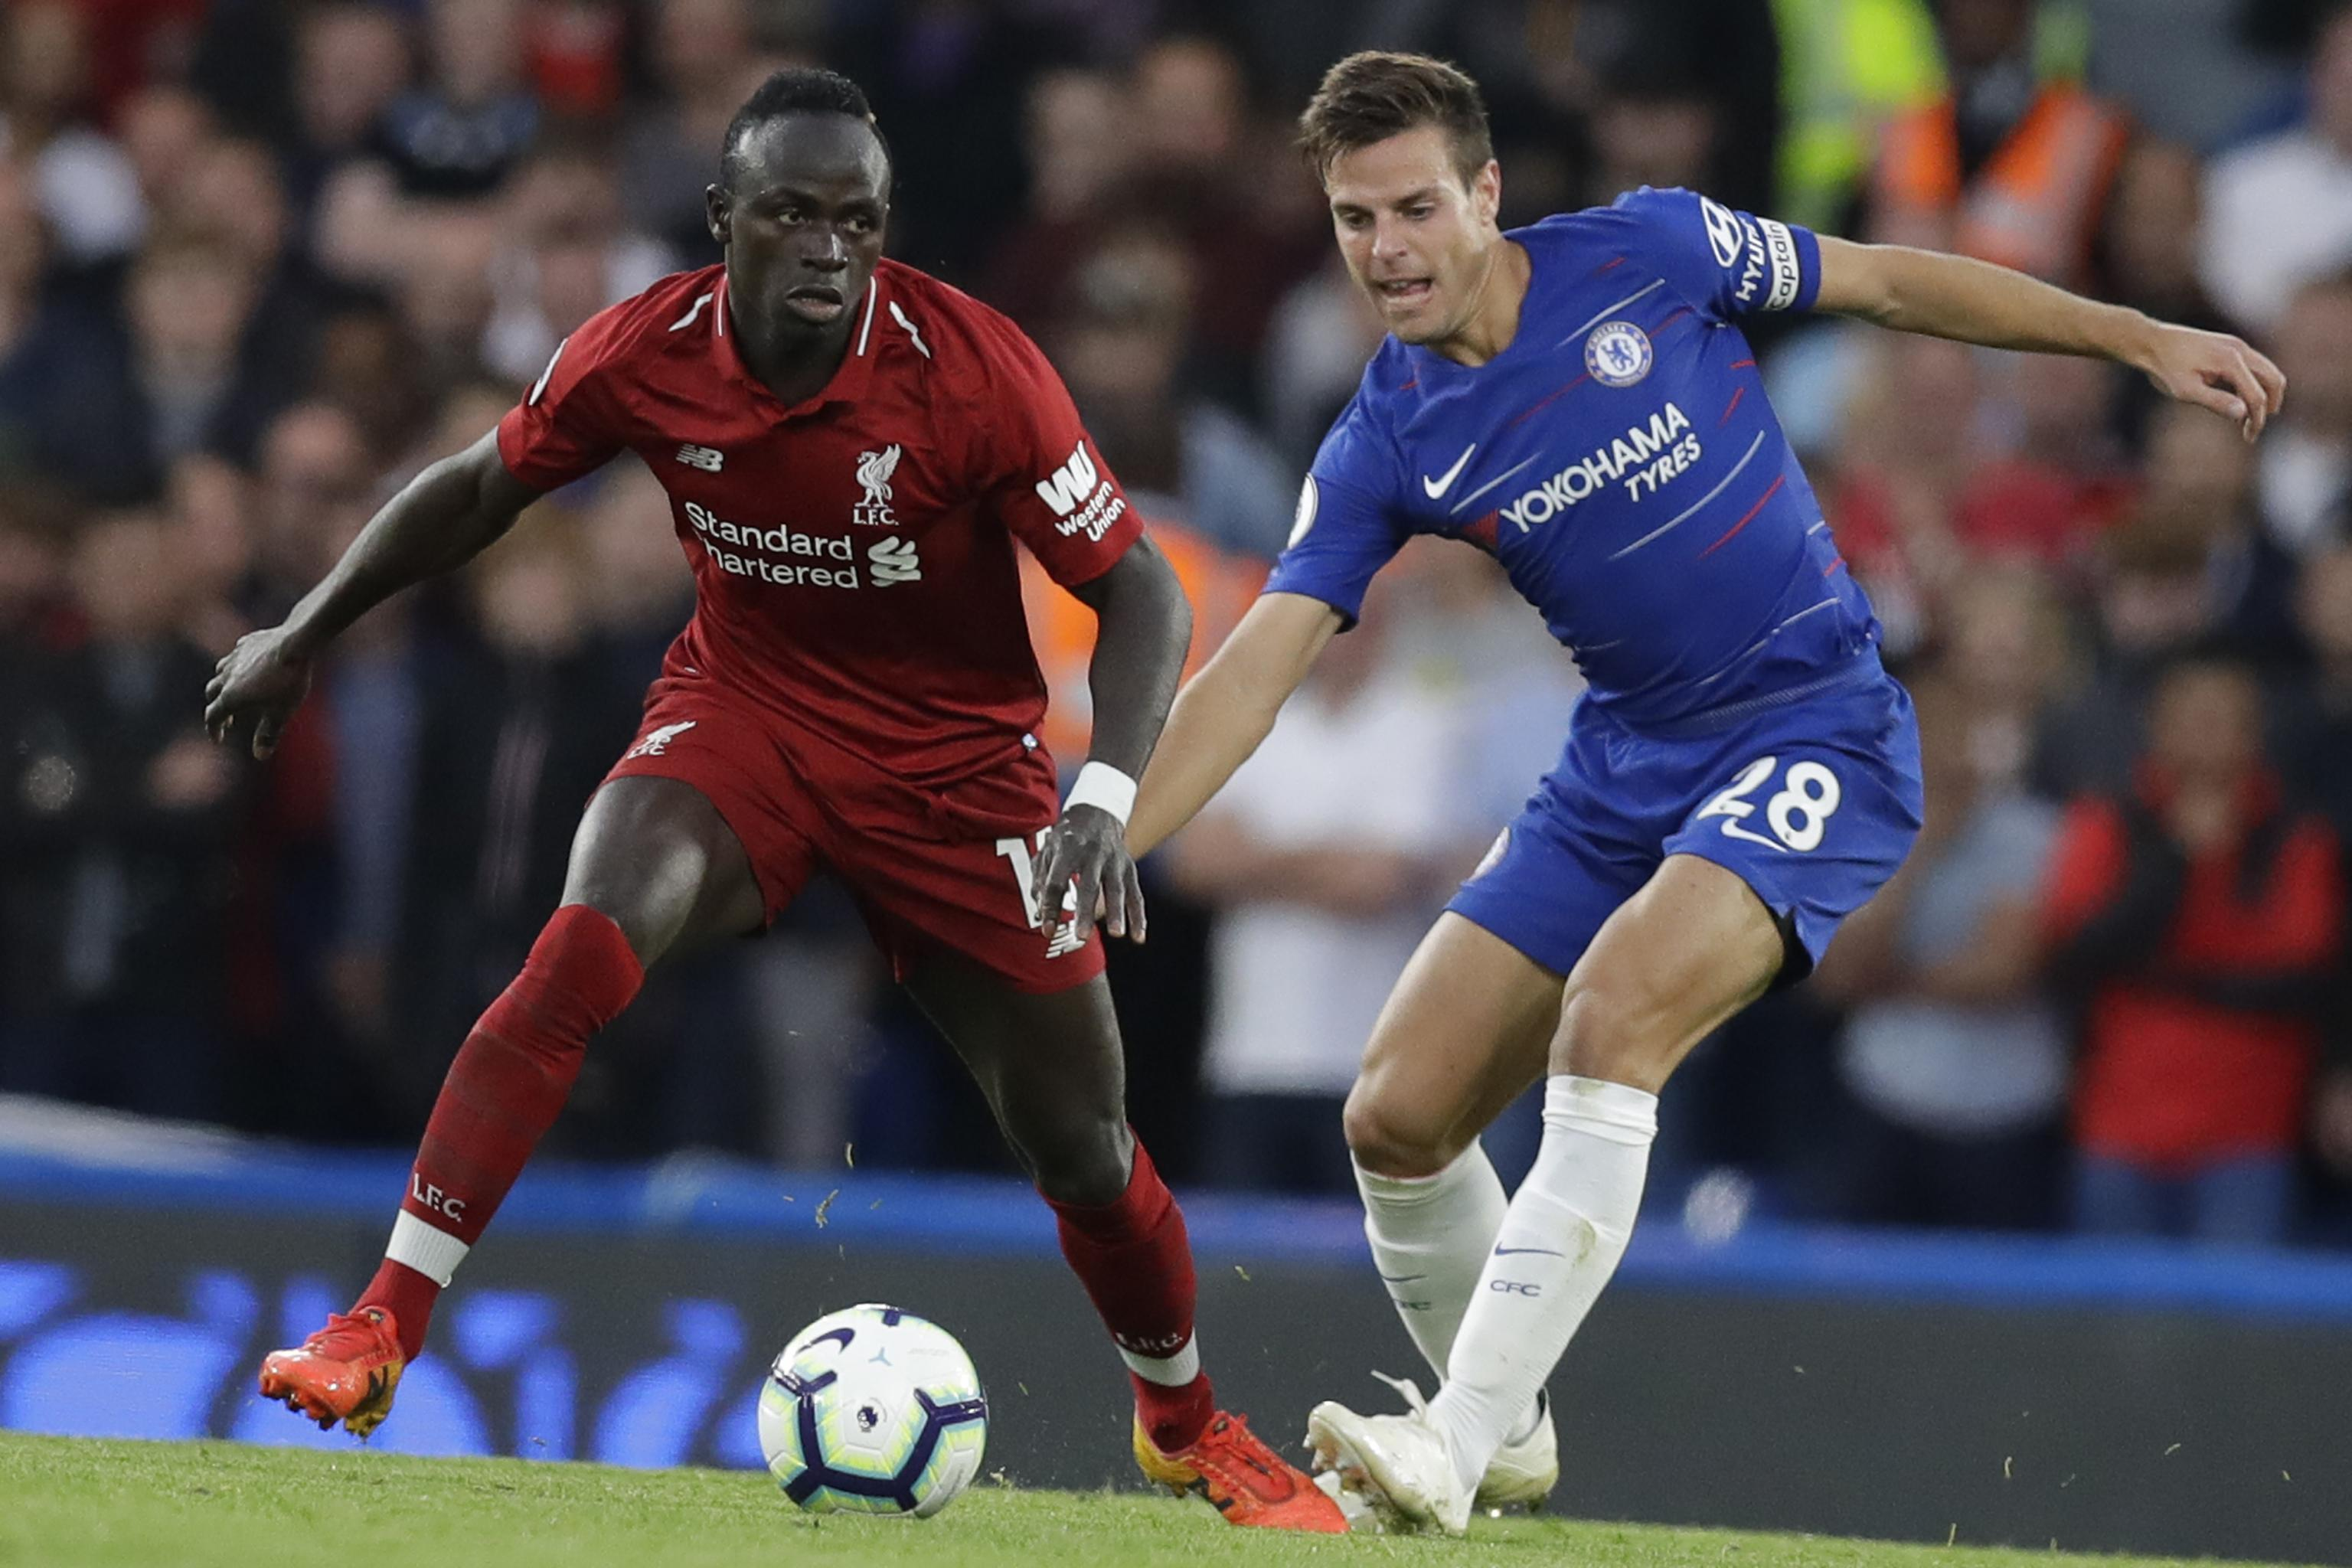 Liverpool Vs Chelsea 2019 Uefa Super Cup Tv Schedule Live Stream Bleacher Report Latest News Videos And Highlights